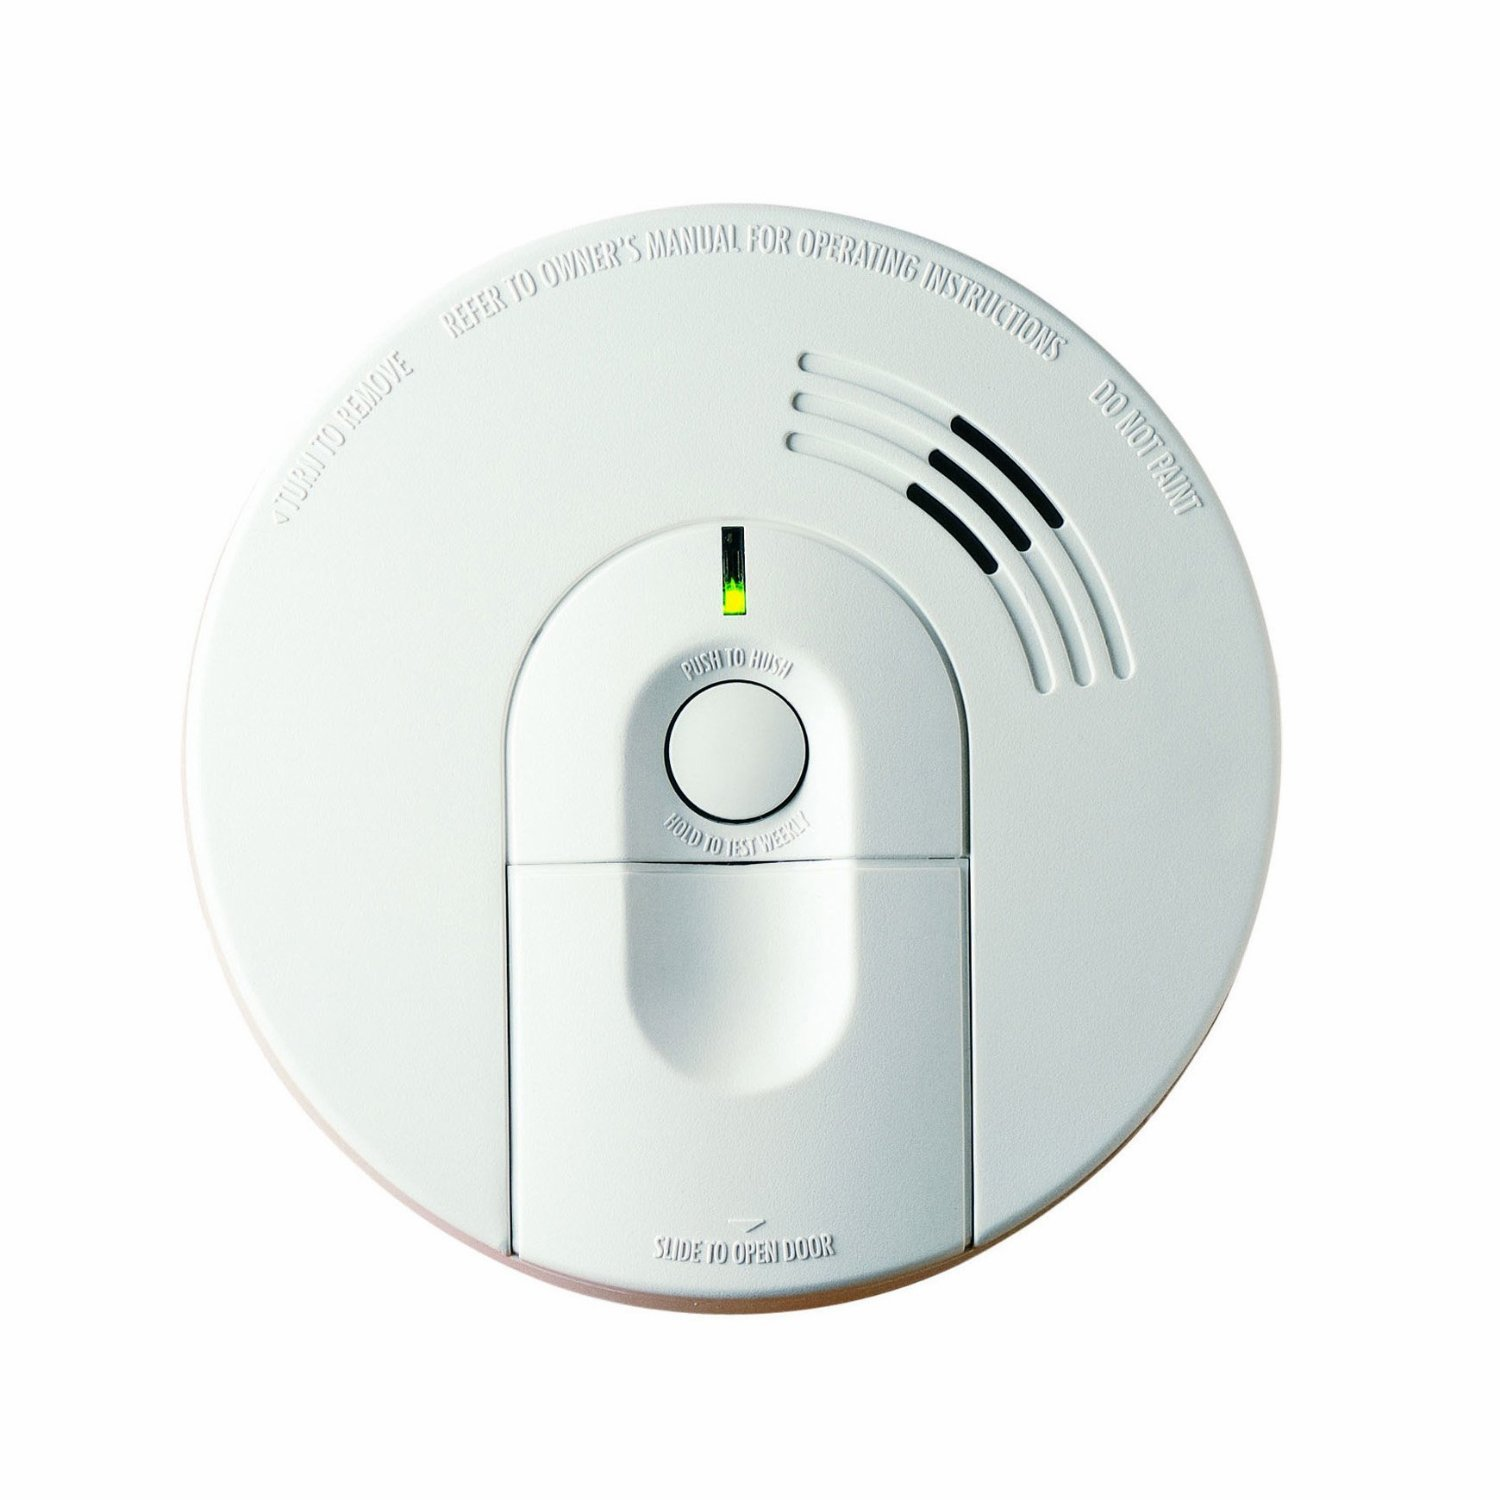 Kidde i4618 Firex Hardwire Ionization Smoke Detector with Battery Backup (6 Pack) by Kidde